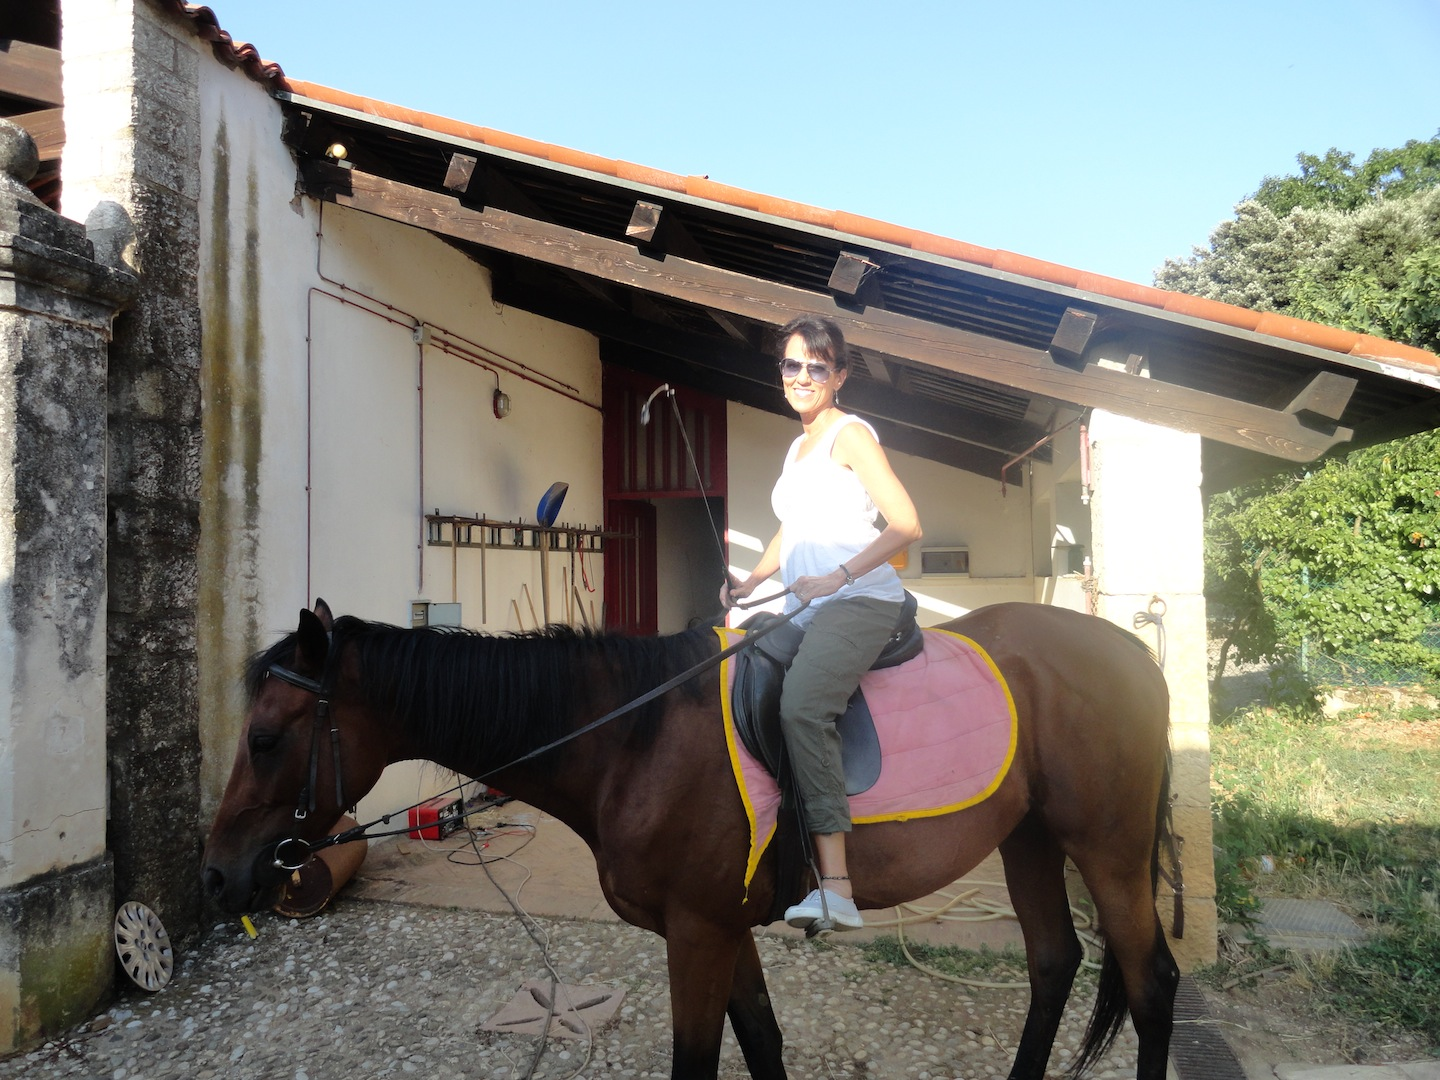 Sharon ready to ride through the hills of Vicenza!